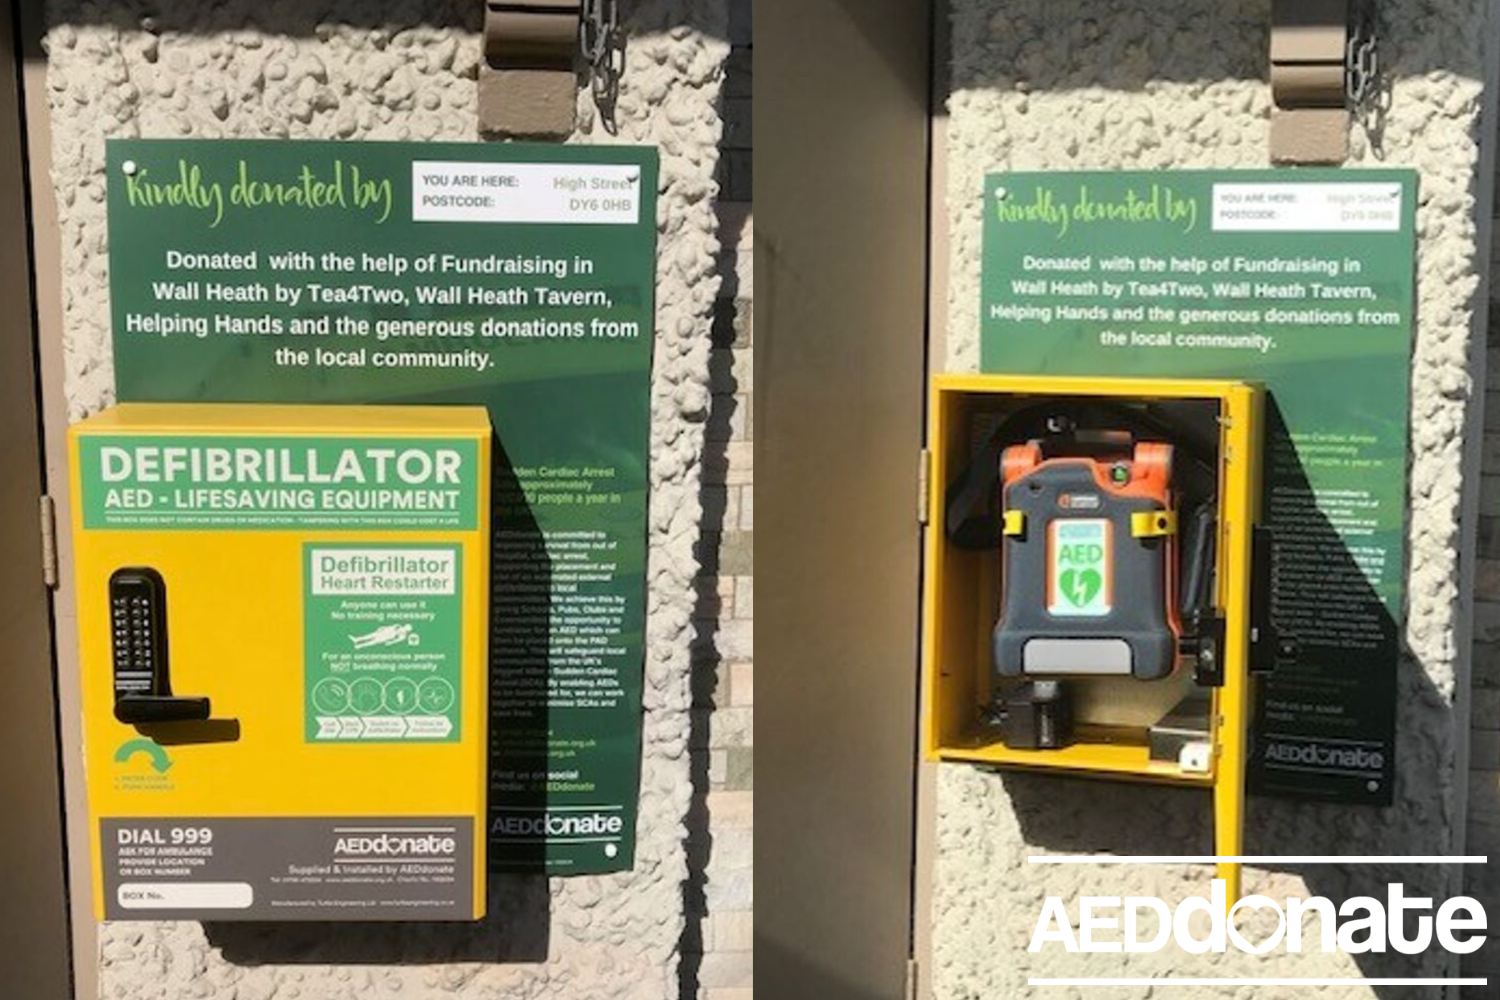 Defibrillator for Wall Heath